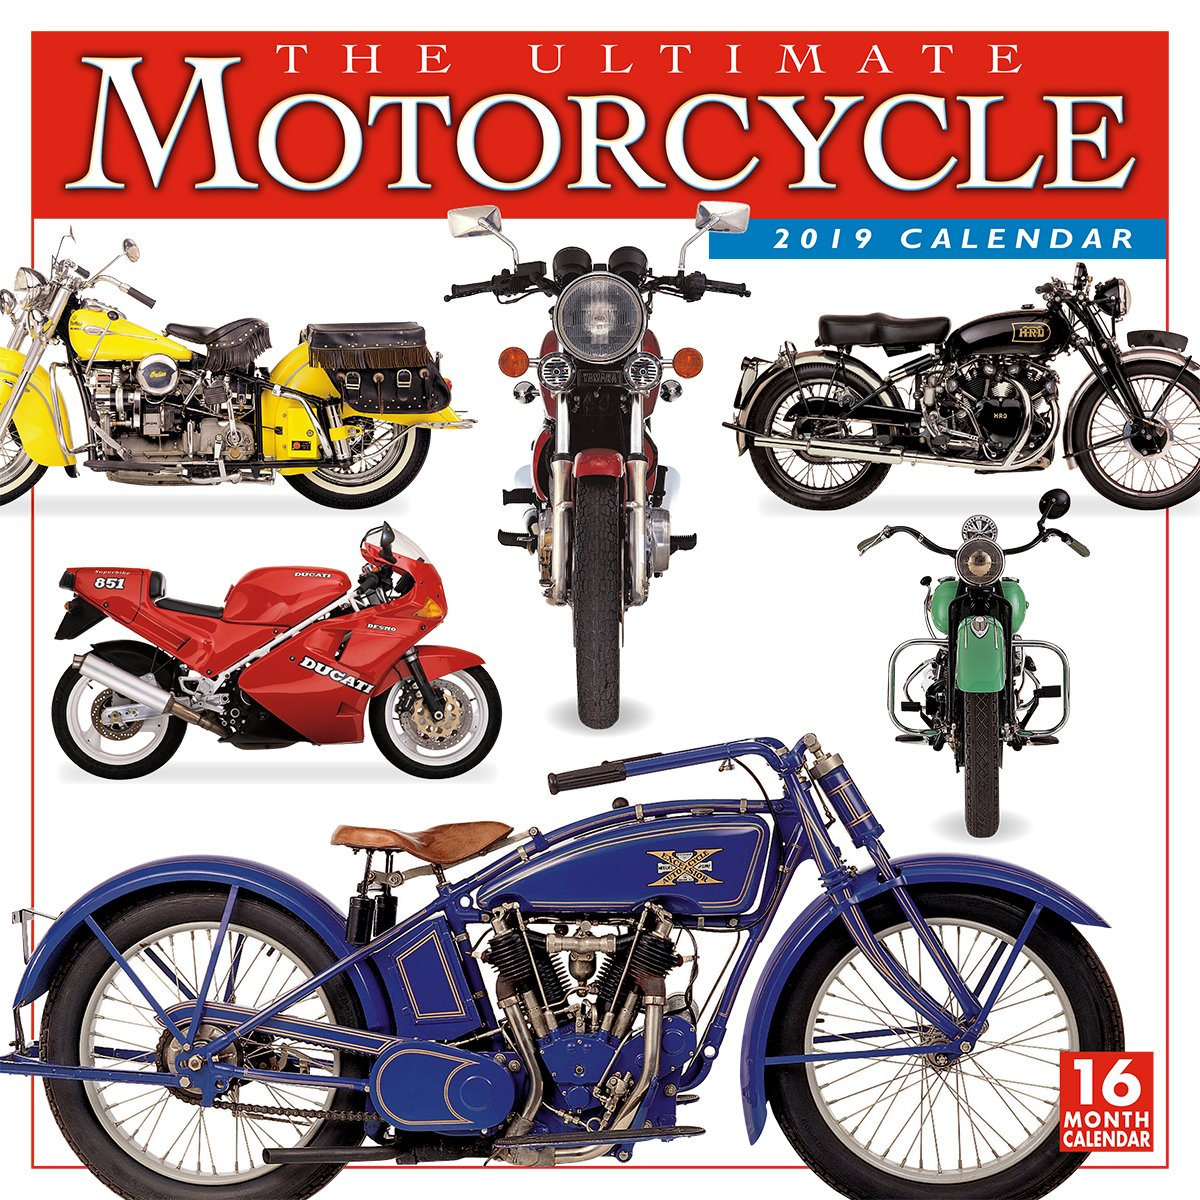 2019 The Ultimate Motorcycle 16-Month Wall Calendar: by Sellers Publishing, 12x12 (CA-0411) Calendar – Wall Calendar, Aug 15 2018 DK Publishing Inc. 1531904114 /